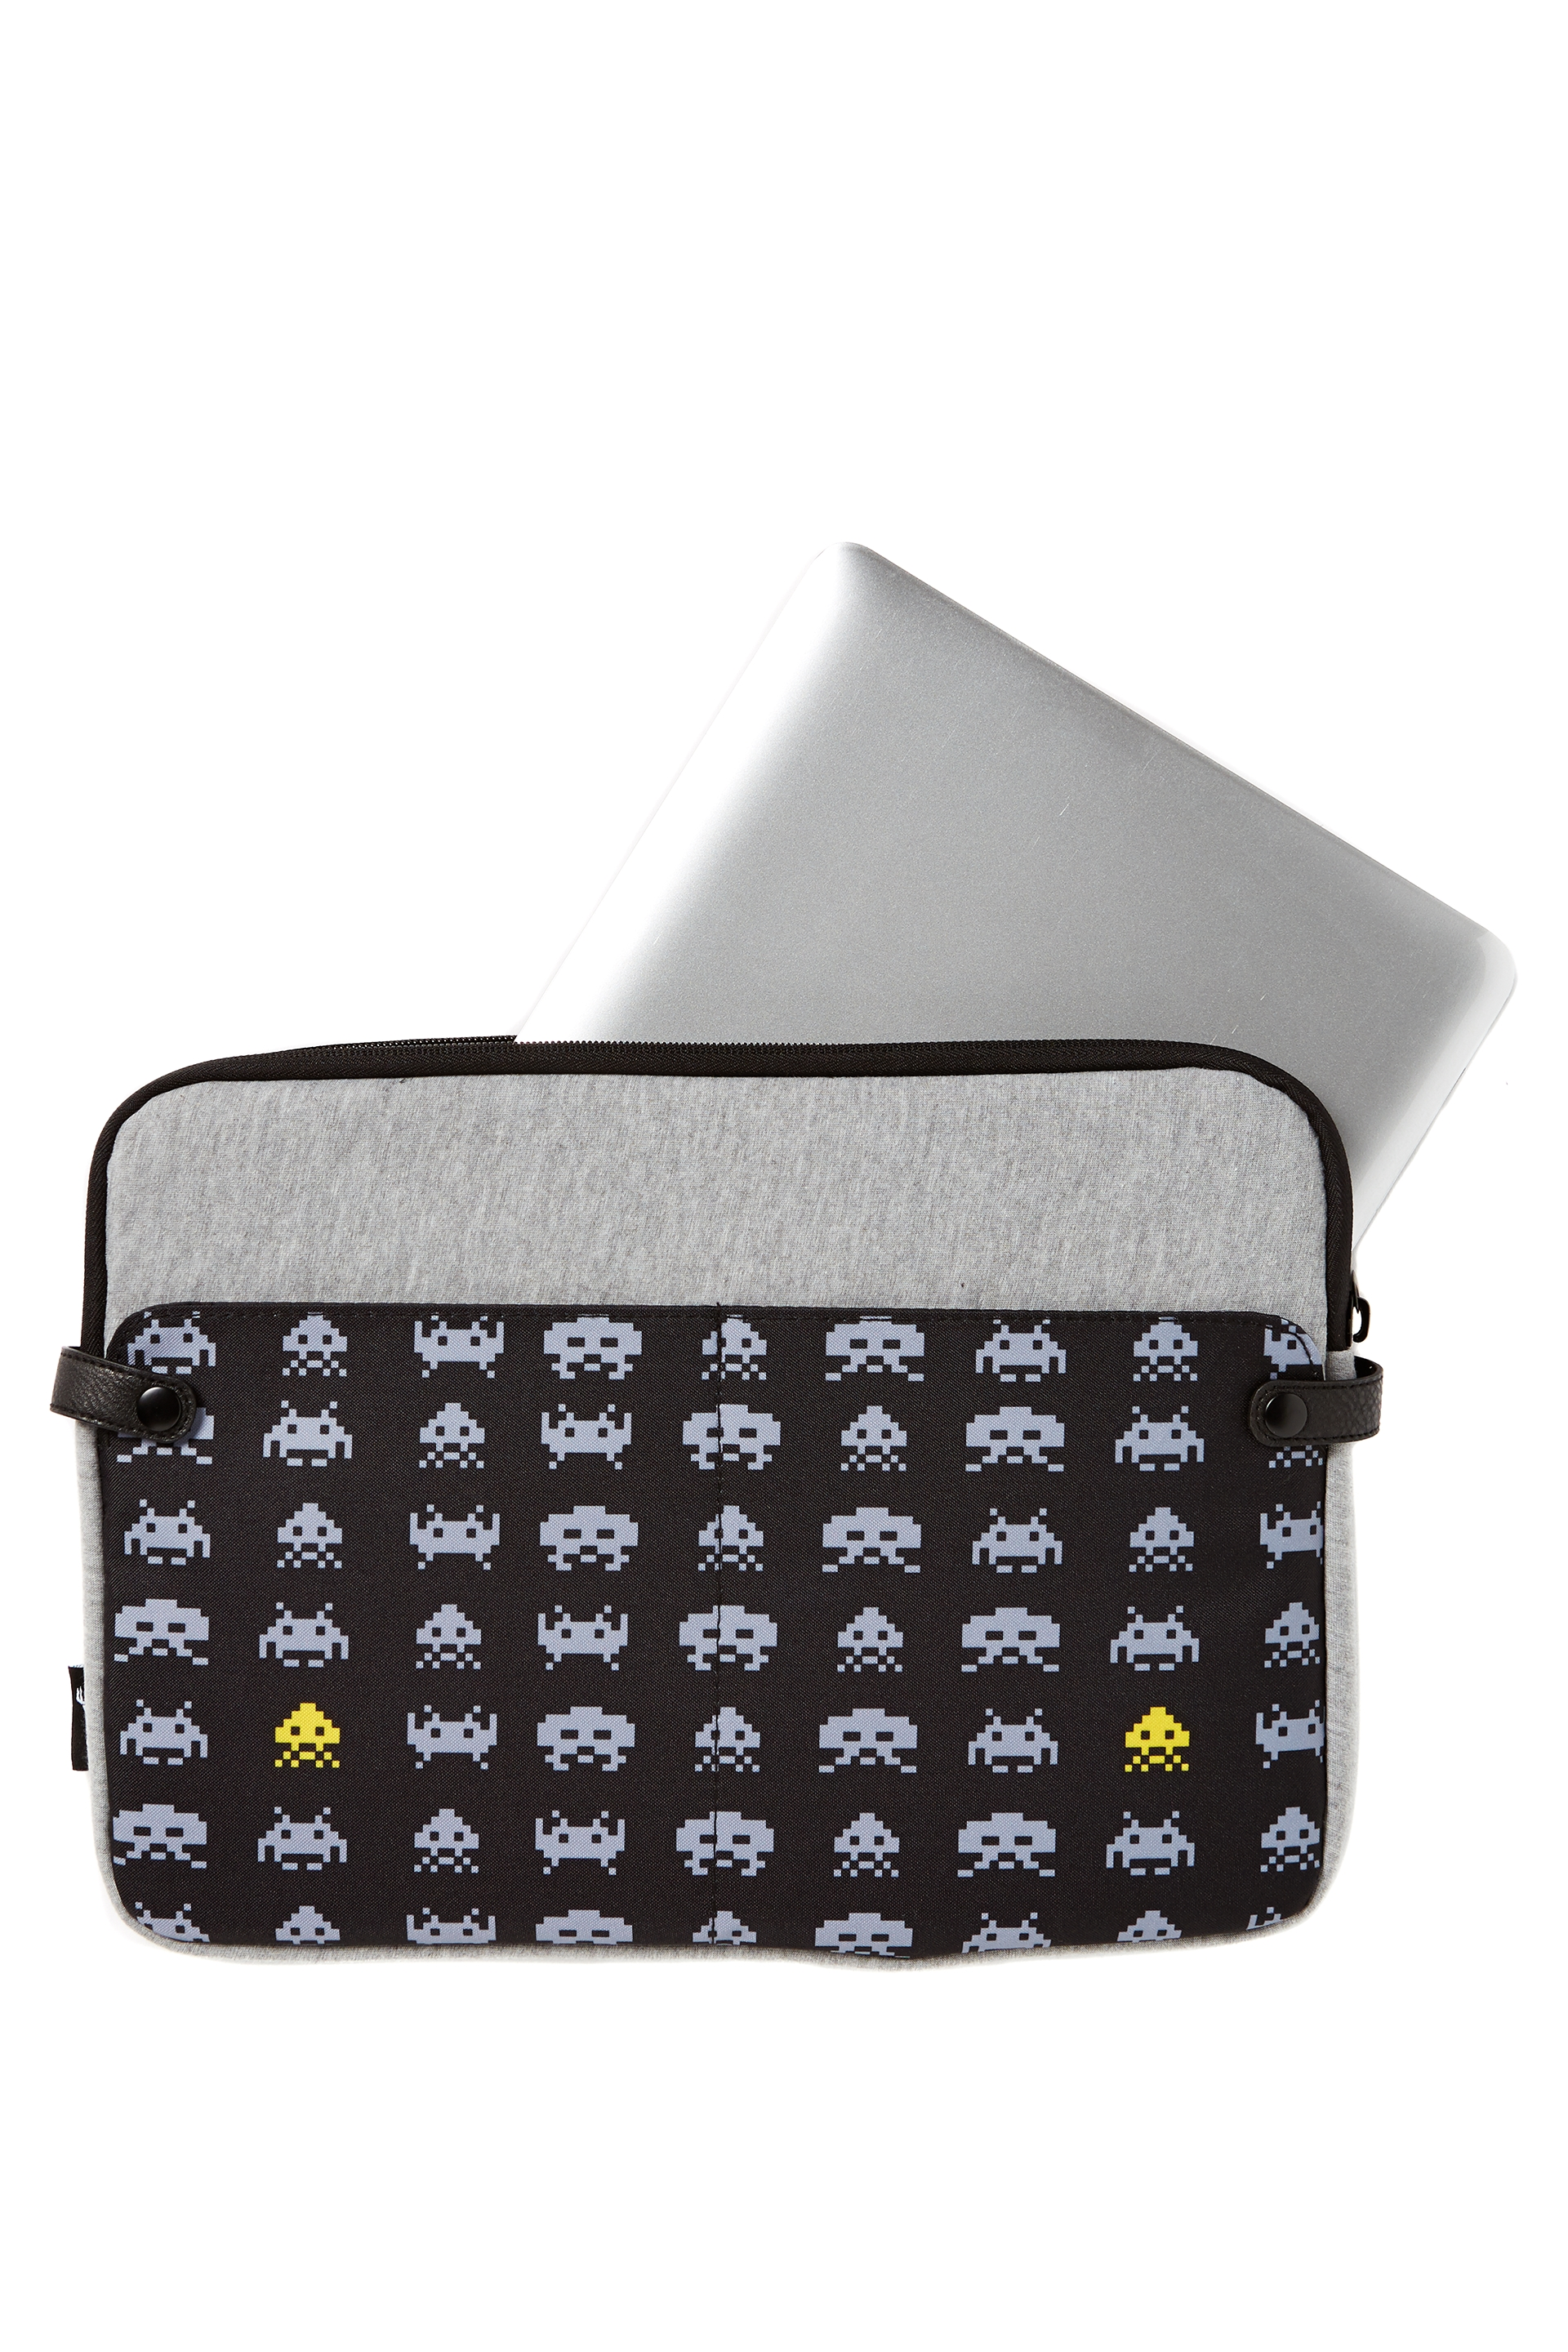 Typo - Varsity Laptop Case 13 Inch - Lcn space invaders pattern 9351533858622